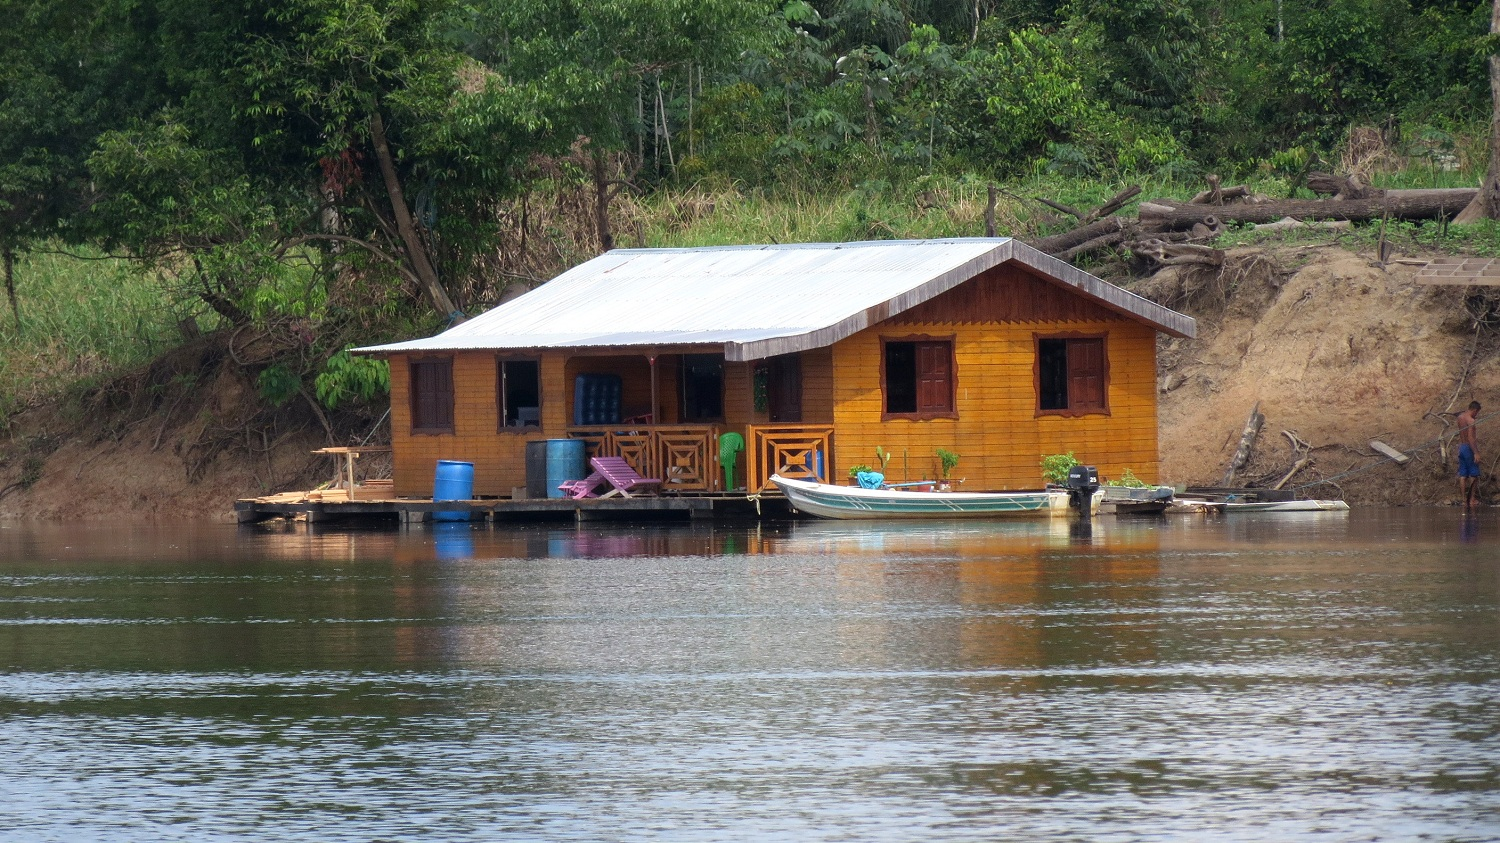 A wooden house, with a veranda, on the river. A canoe is anchored at its side.